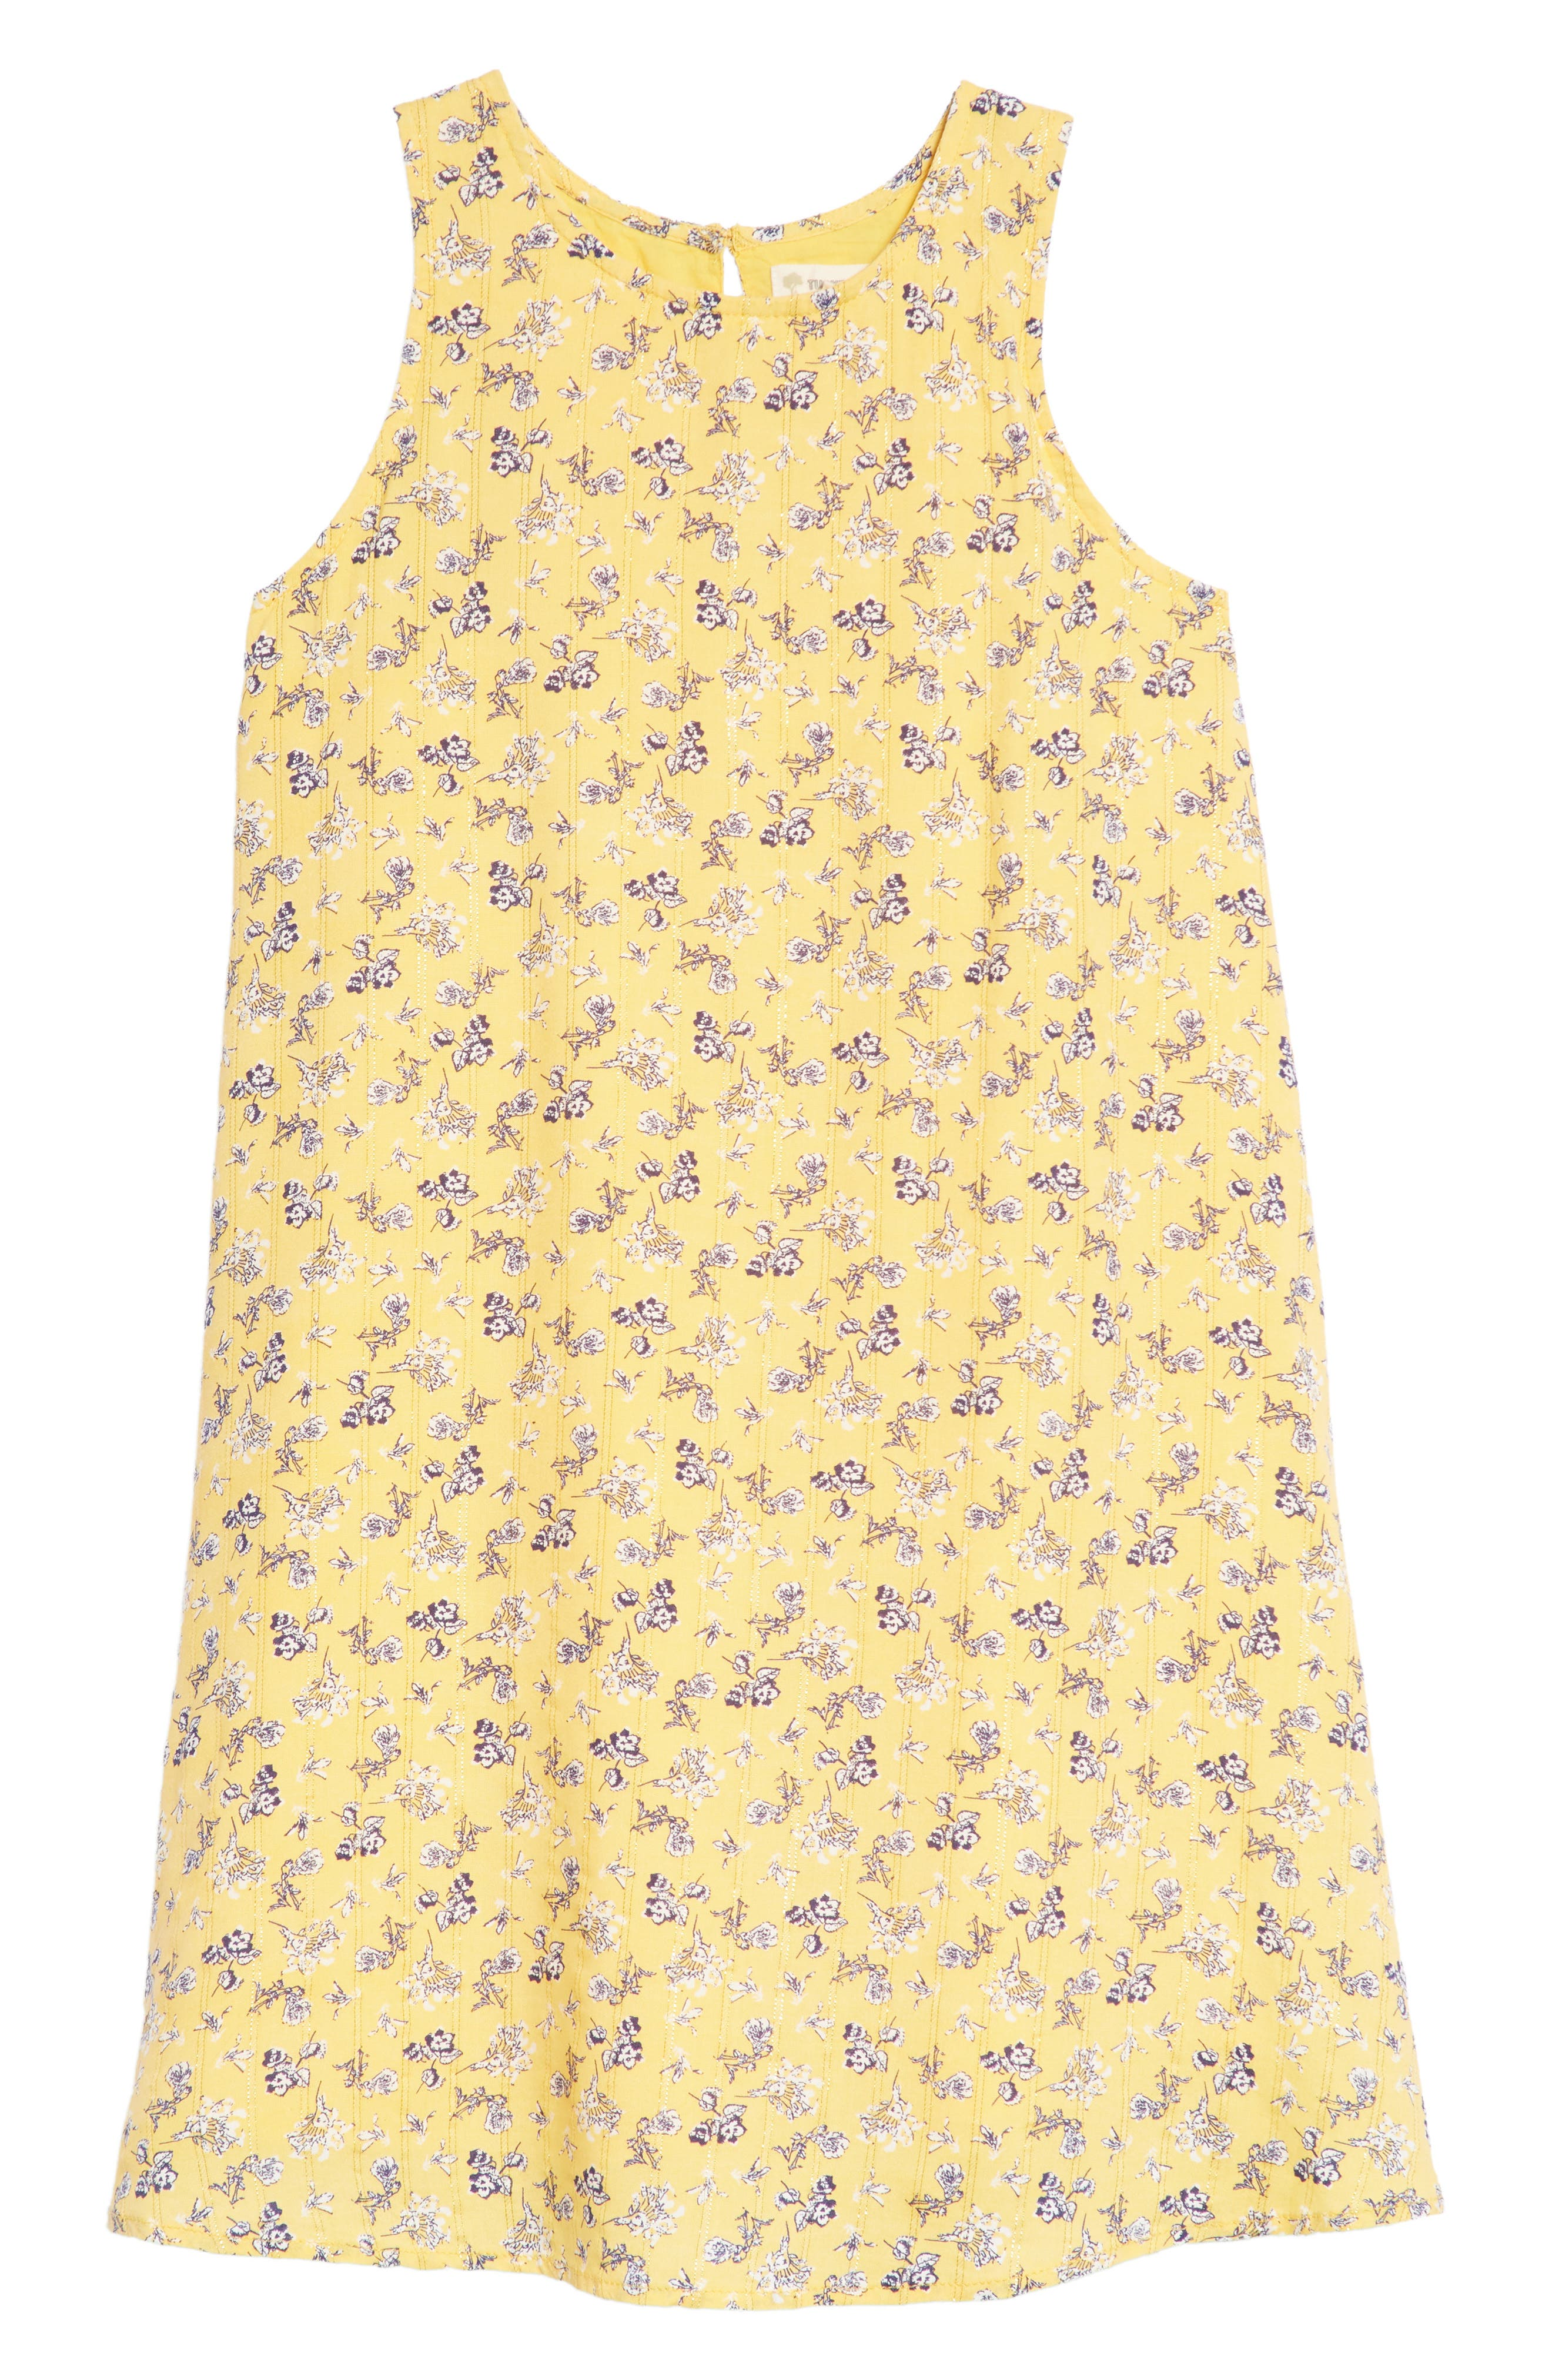 Floral Sleeveless Shift Dress,                         Main,                         color, Yellow Sunset Spring Blooms